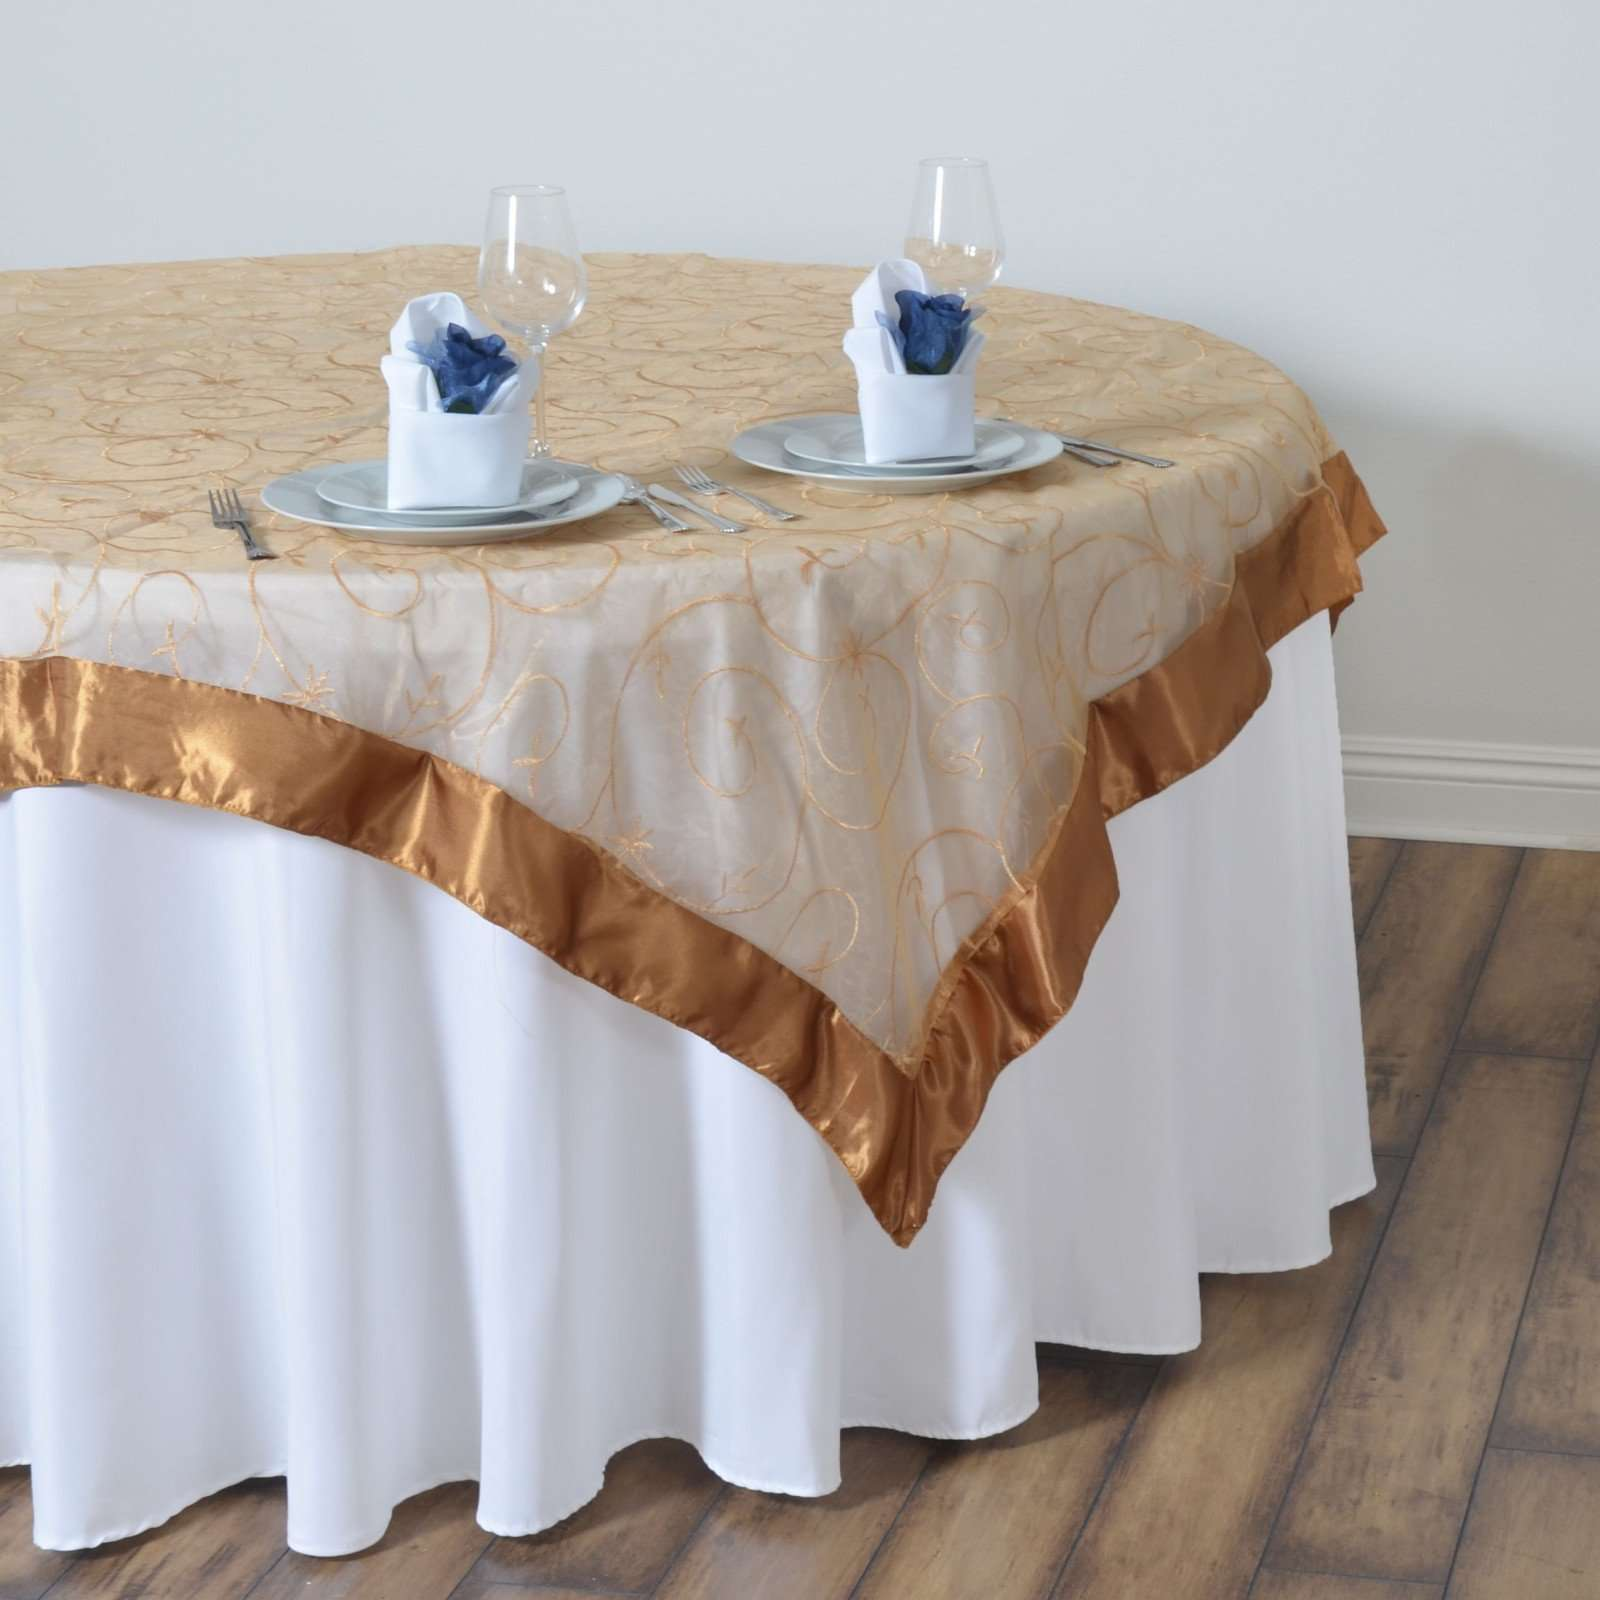 60 Gold Organza Sheer Tablecloth Overlay With Satin Edges Wedding Tab Chaircoverfactory